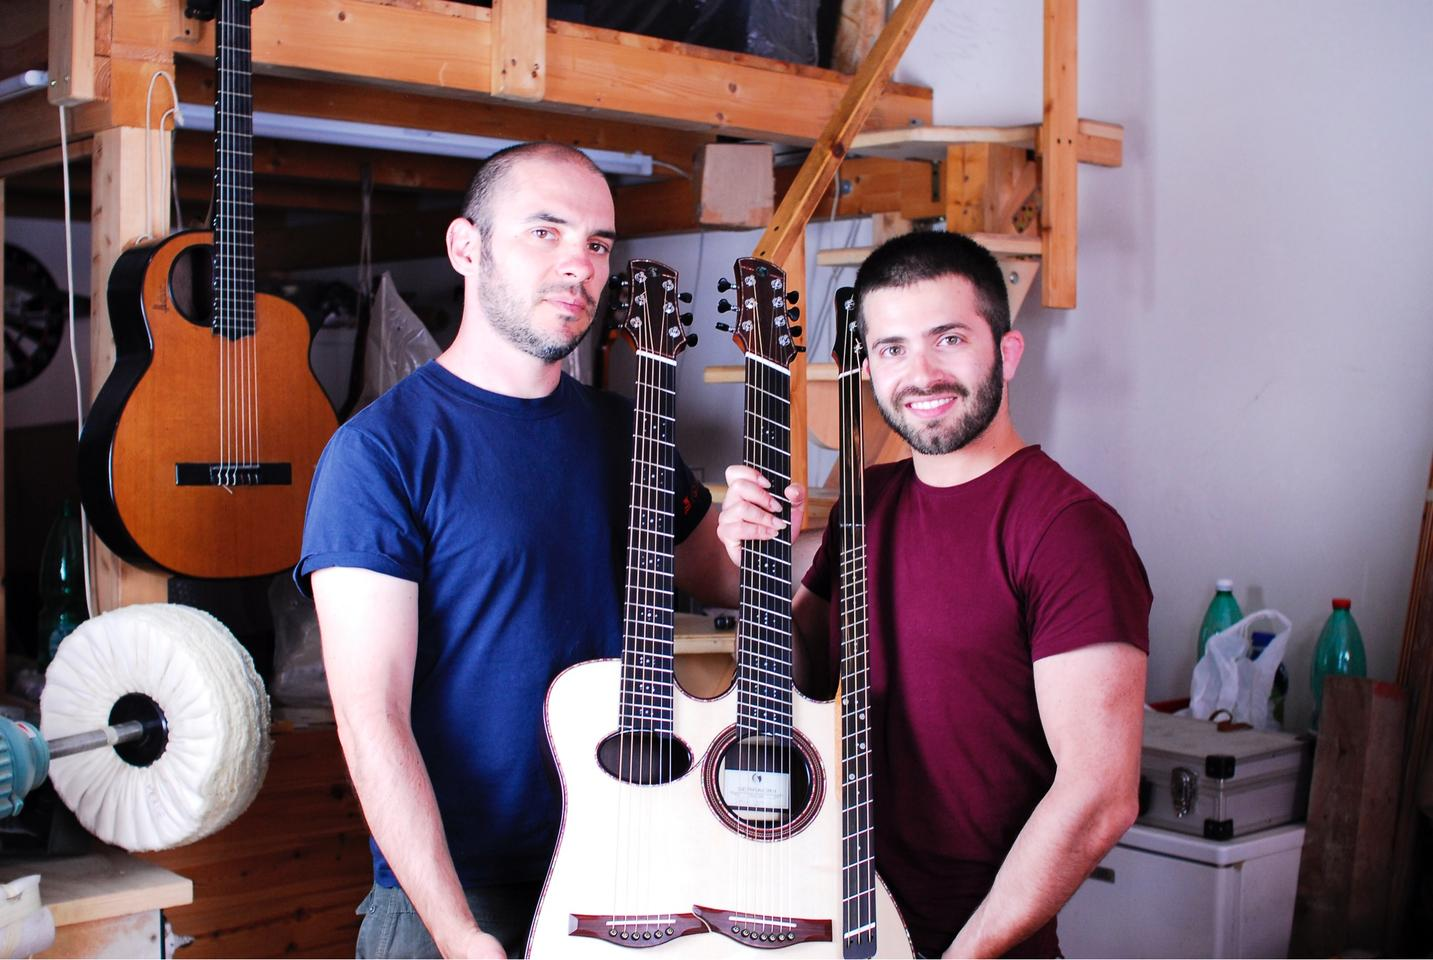 Luca Stricagnoli (right) with his luthier friend Davide Serracini (left) and the Reversed Triple Neck Guitar in the middle